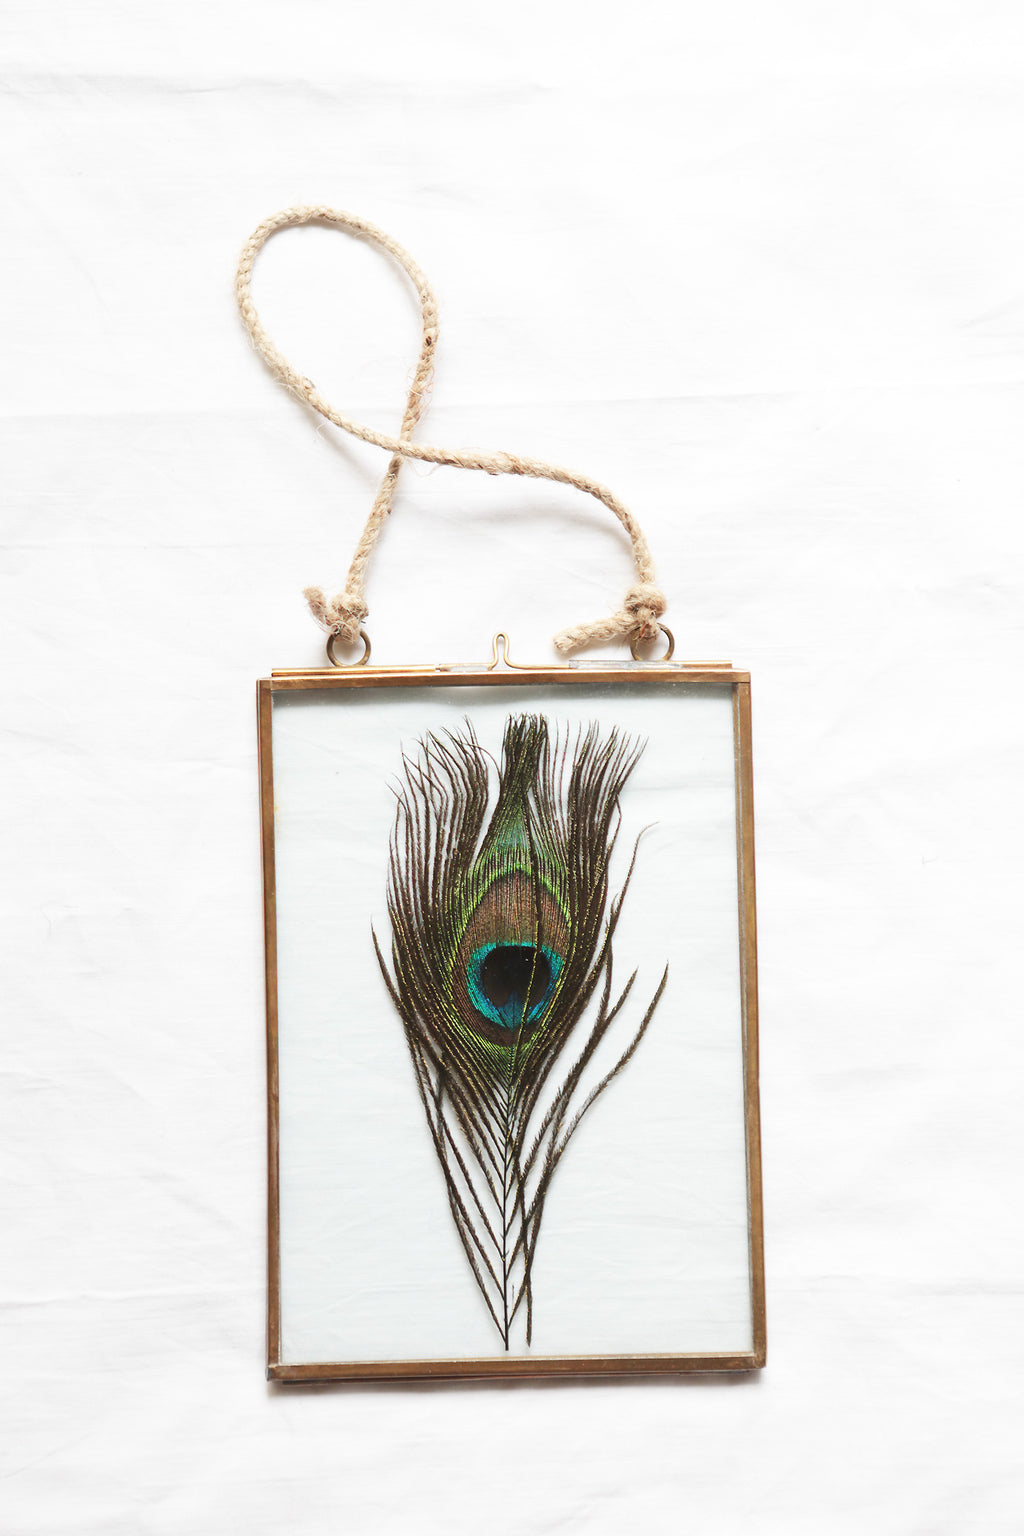 Gold frame & peacock feather